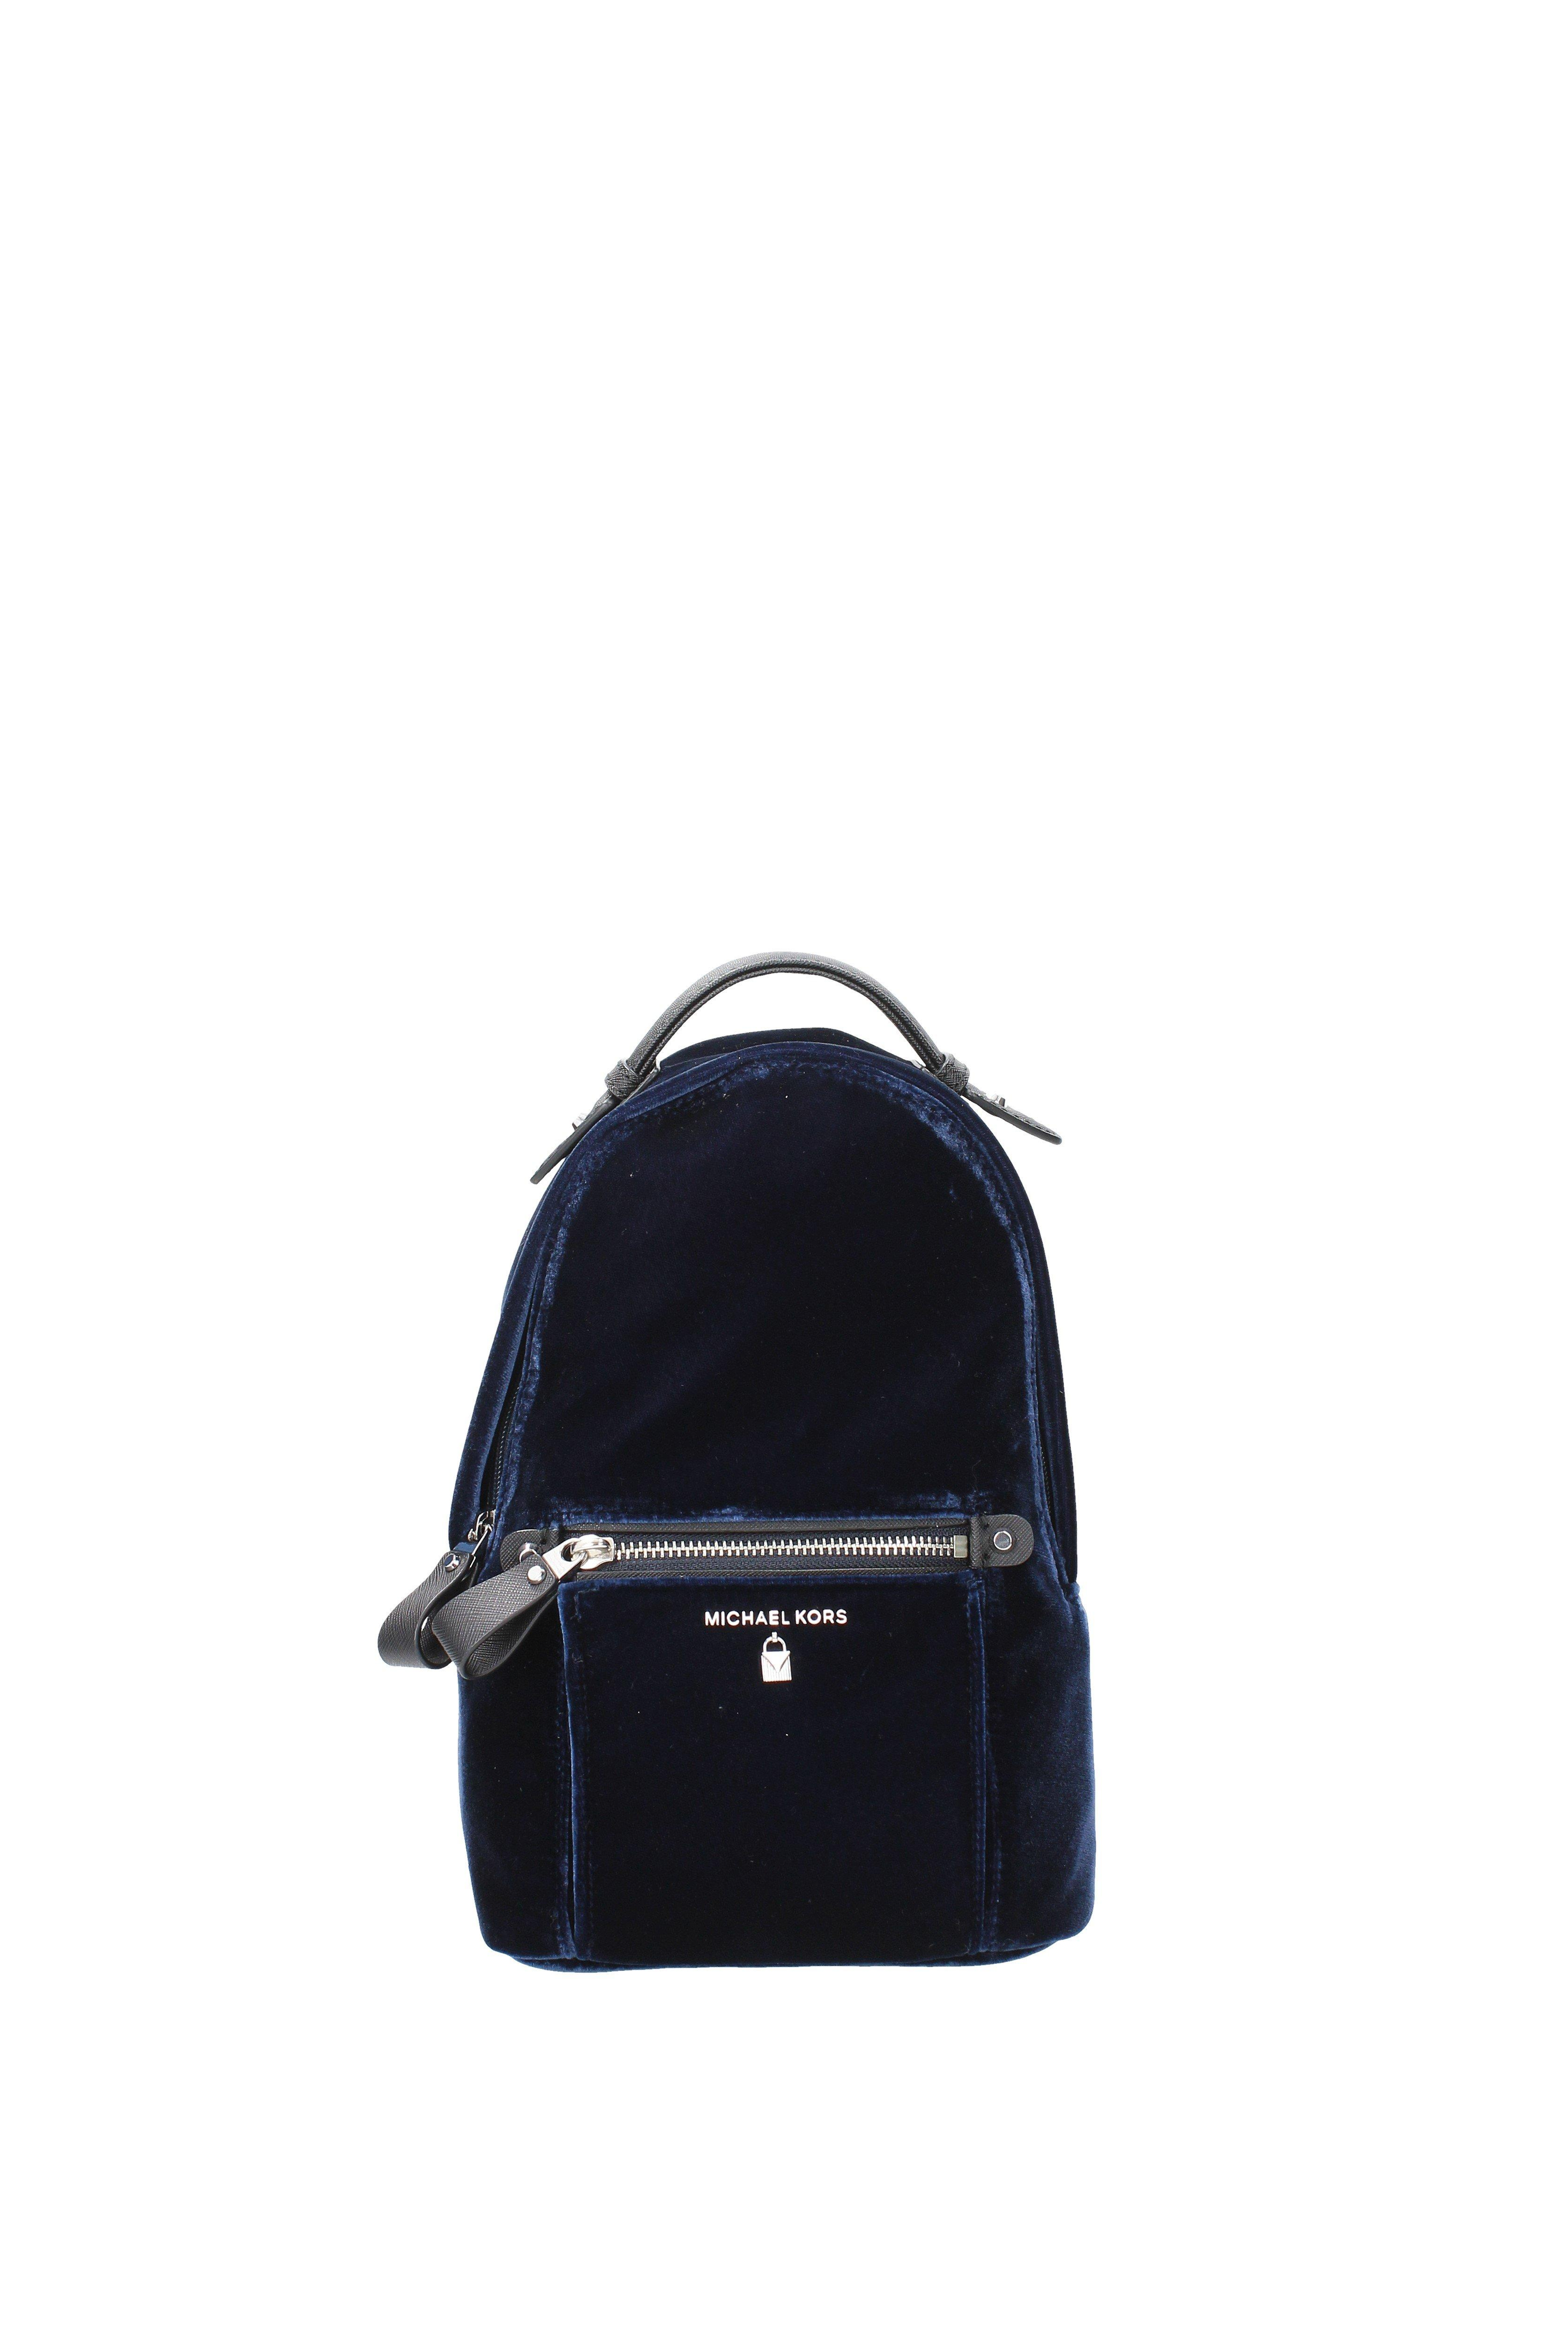 af26849b3caa Michael Kors - Backpacks And Bumbags Kelsey Women Blue - Lyst. View  fullscreen